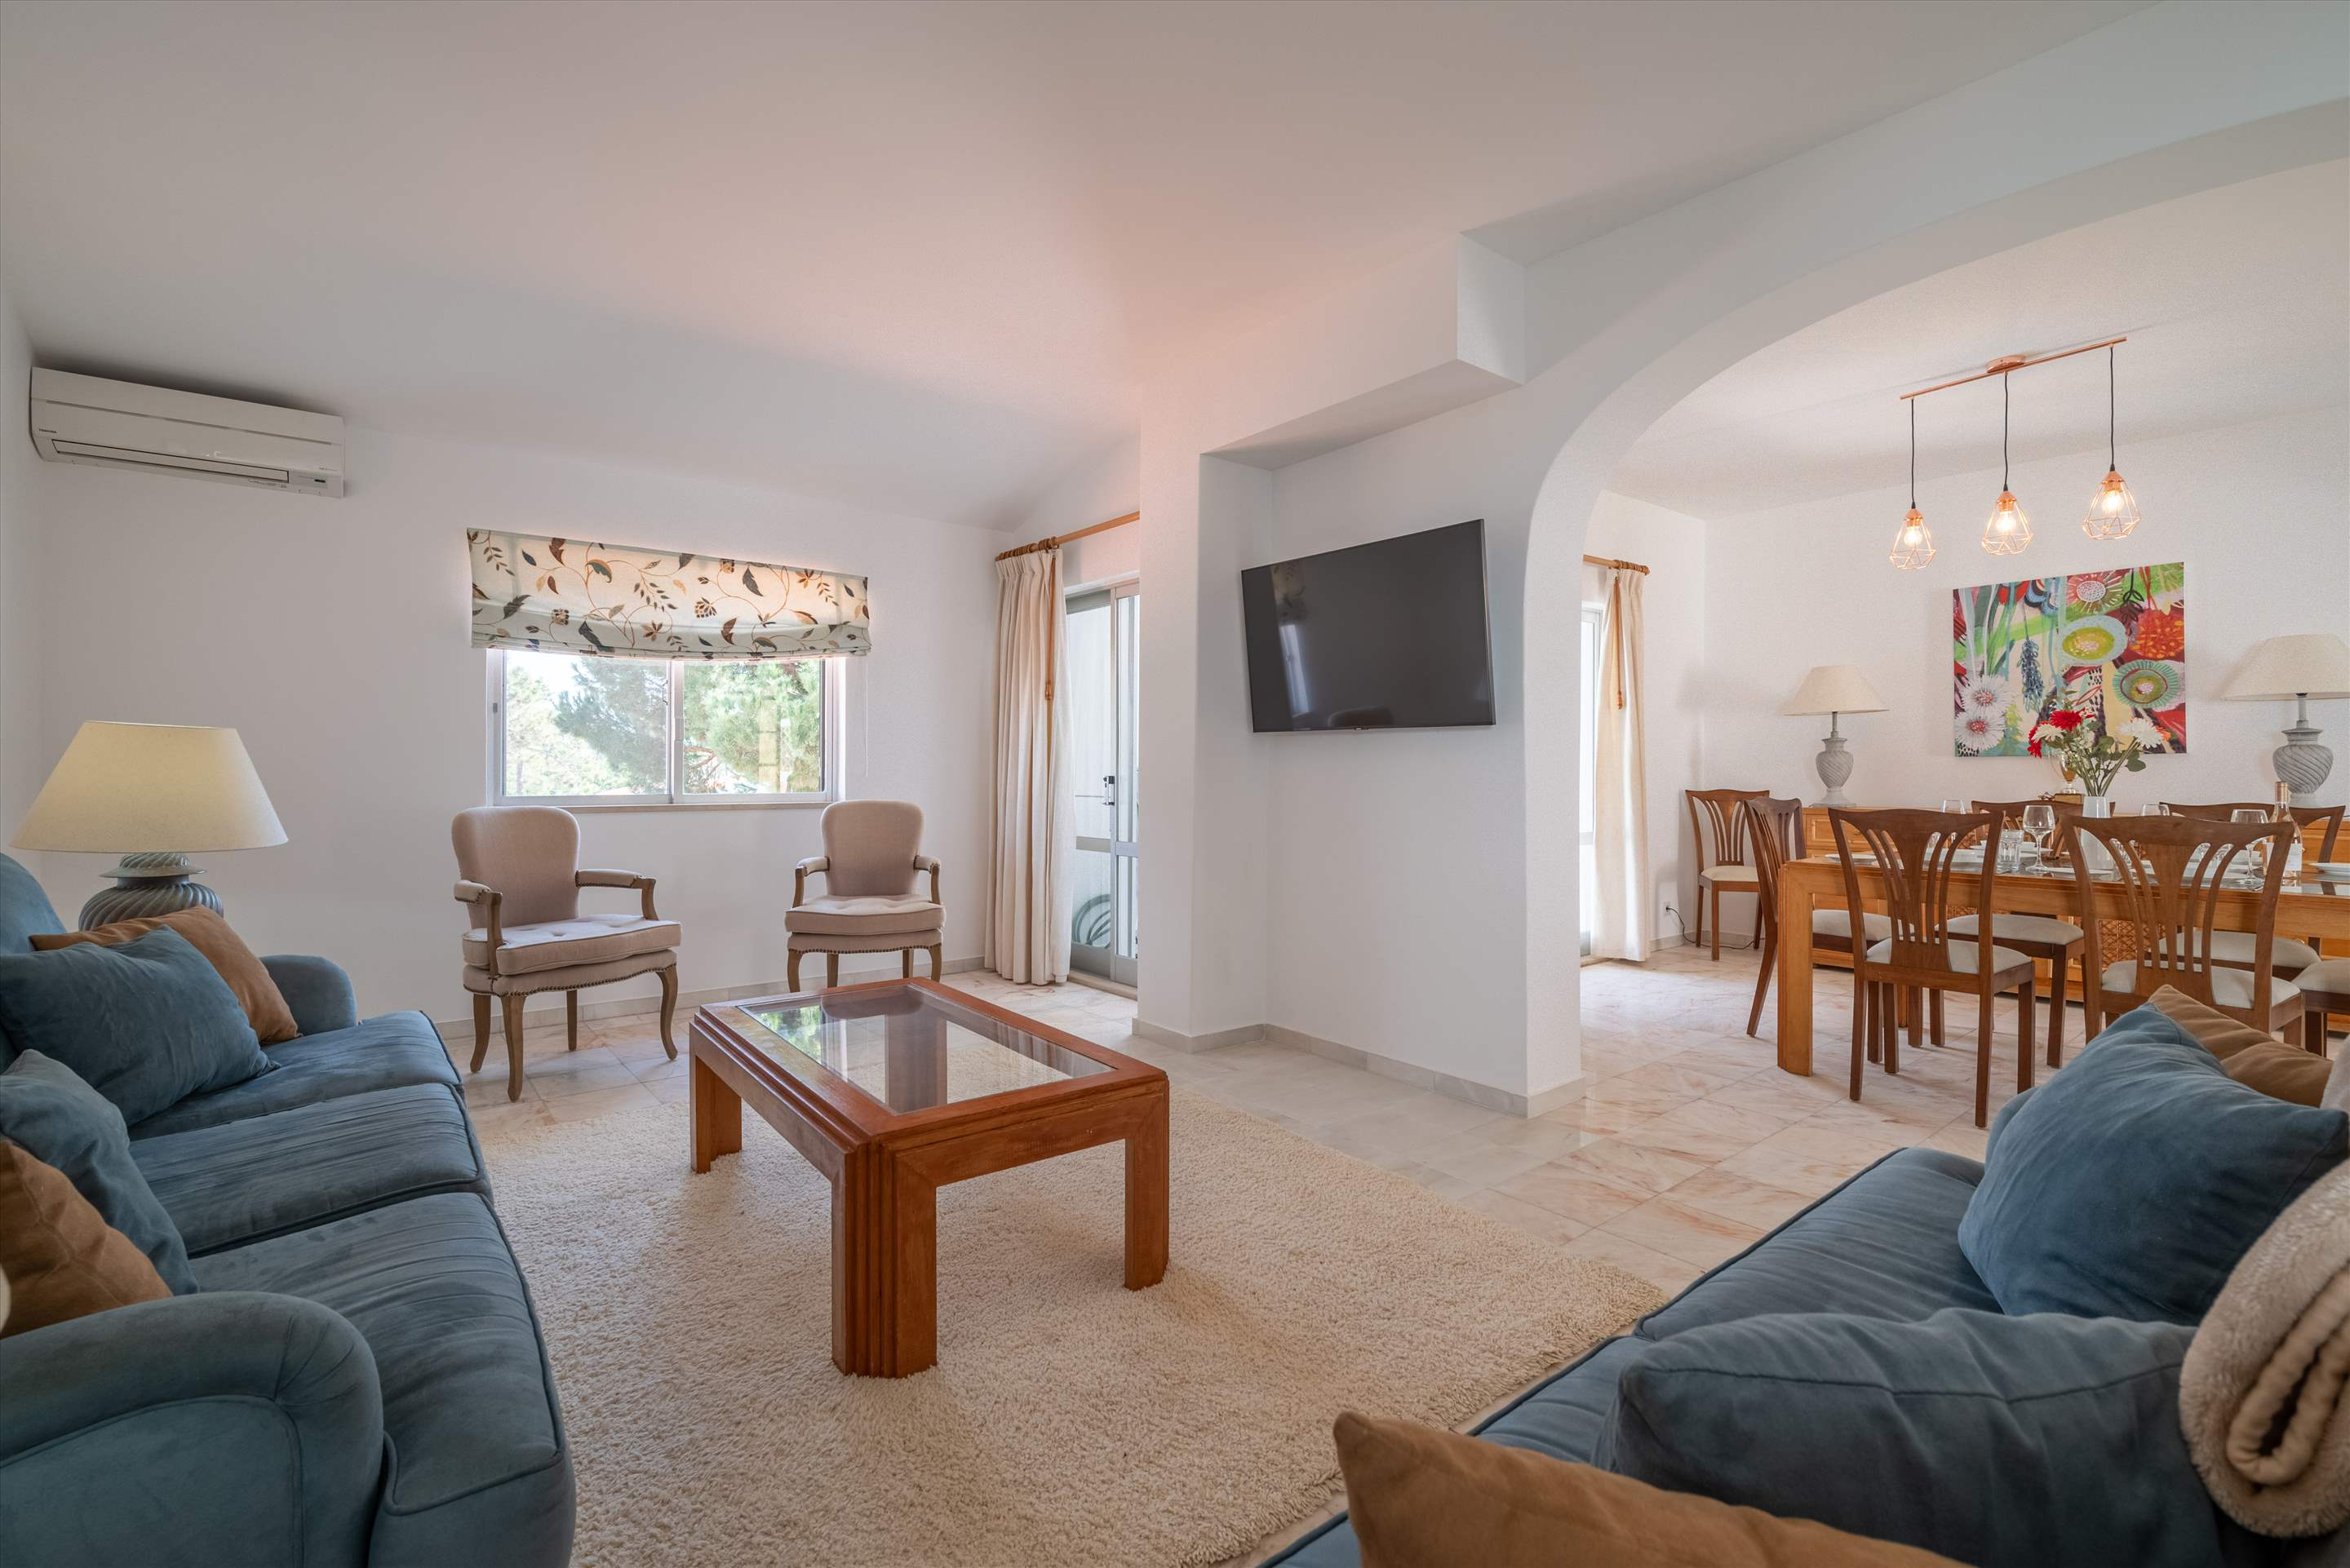 Casa Bella, 3 bedroom apartment in Vale do Lobo, Algarve Photo #6